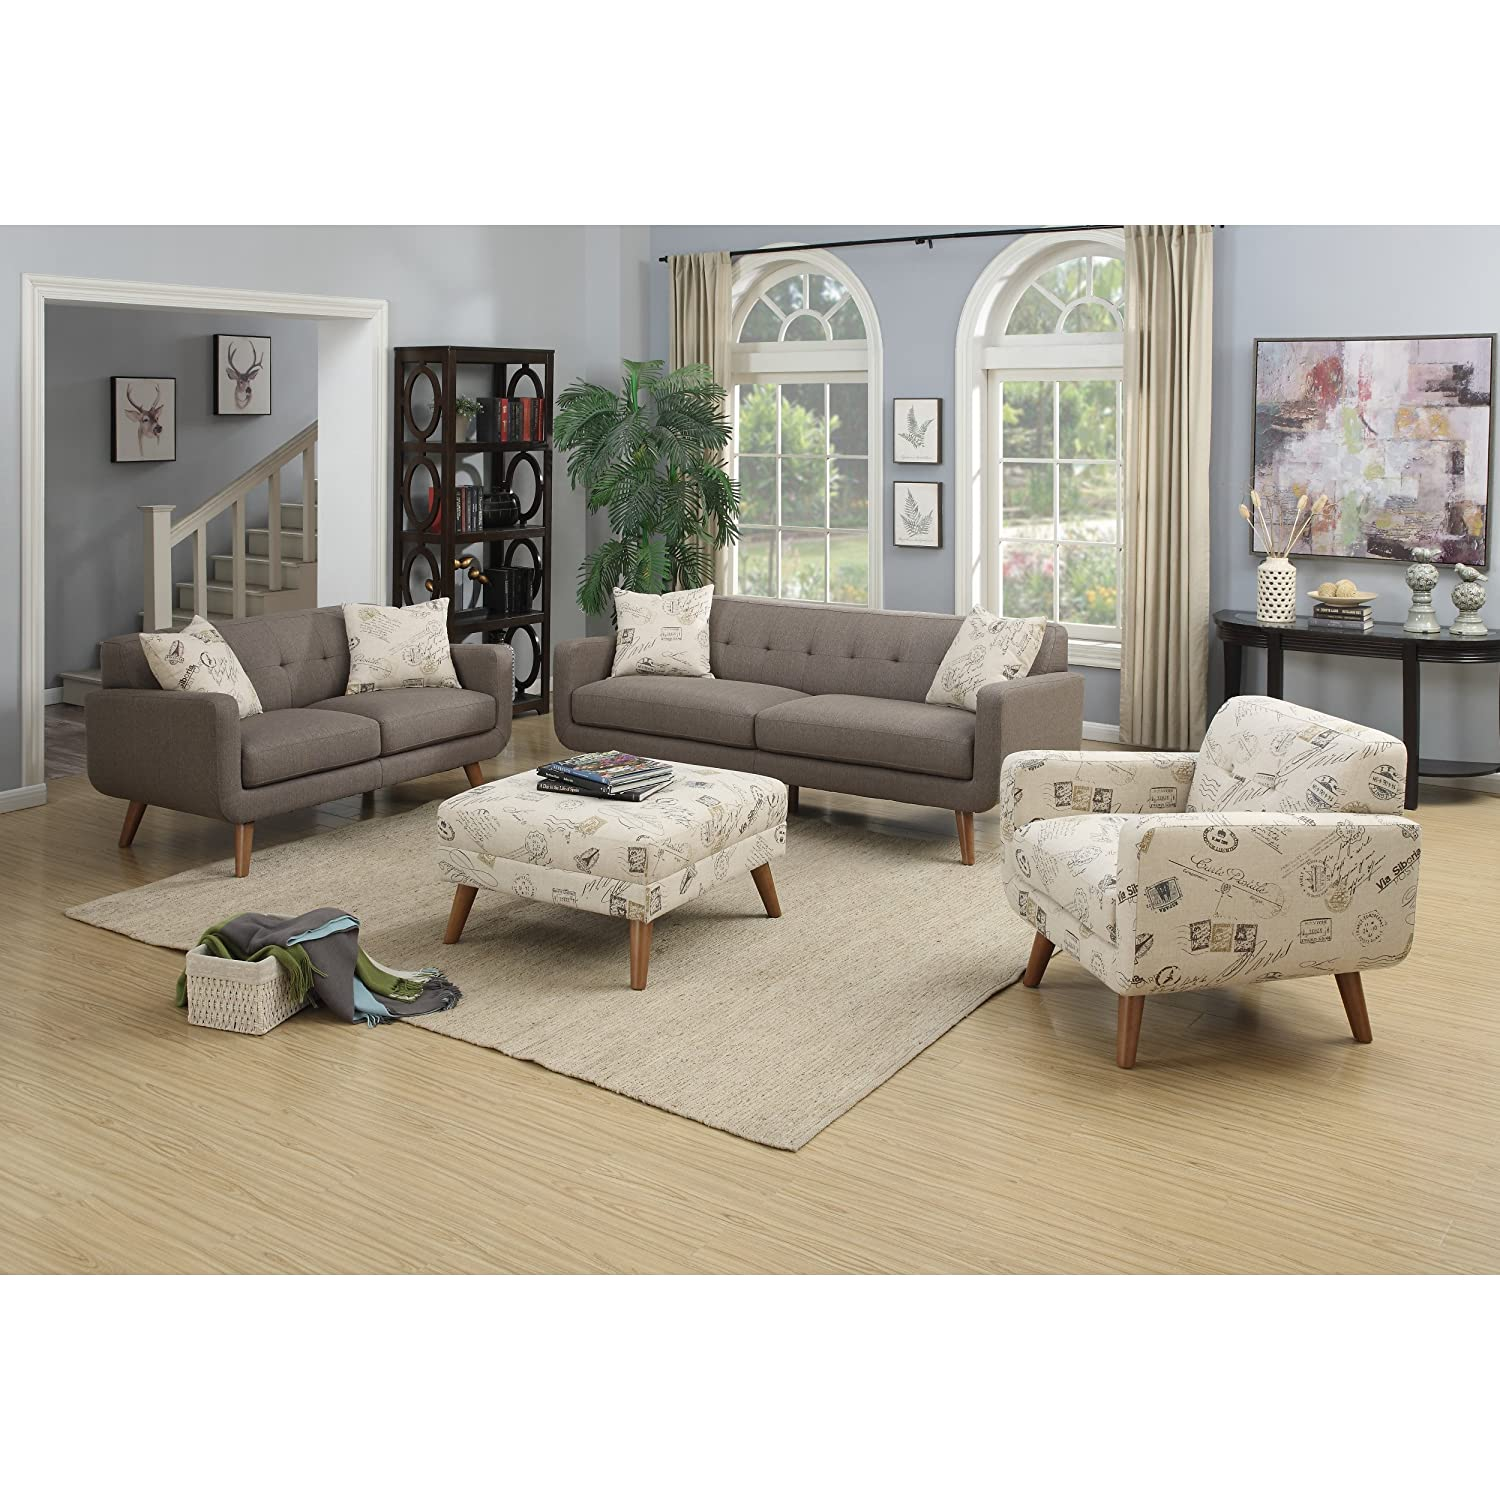 Amazon Emerald Home Furnishings Remix Sofa Brown with 2